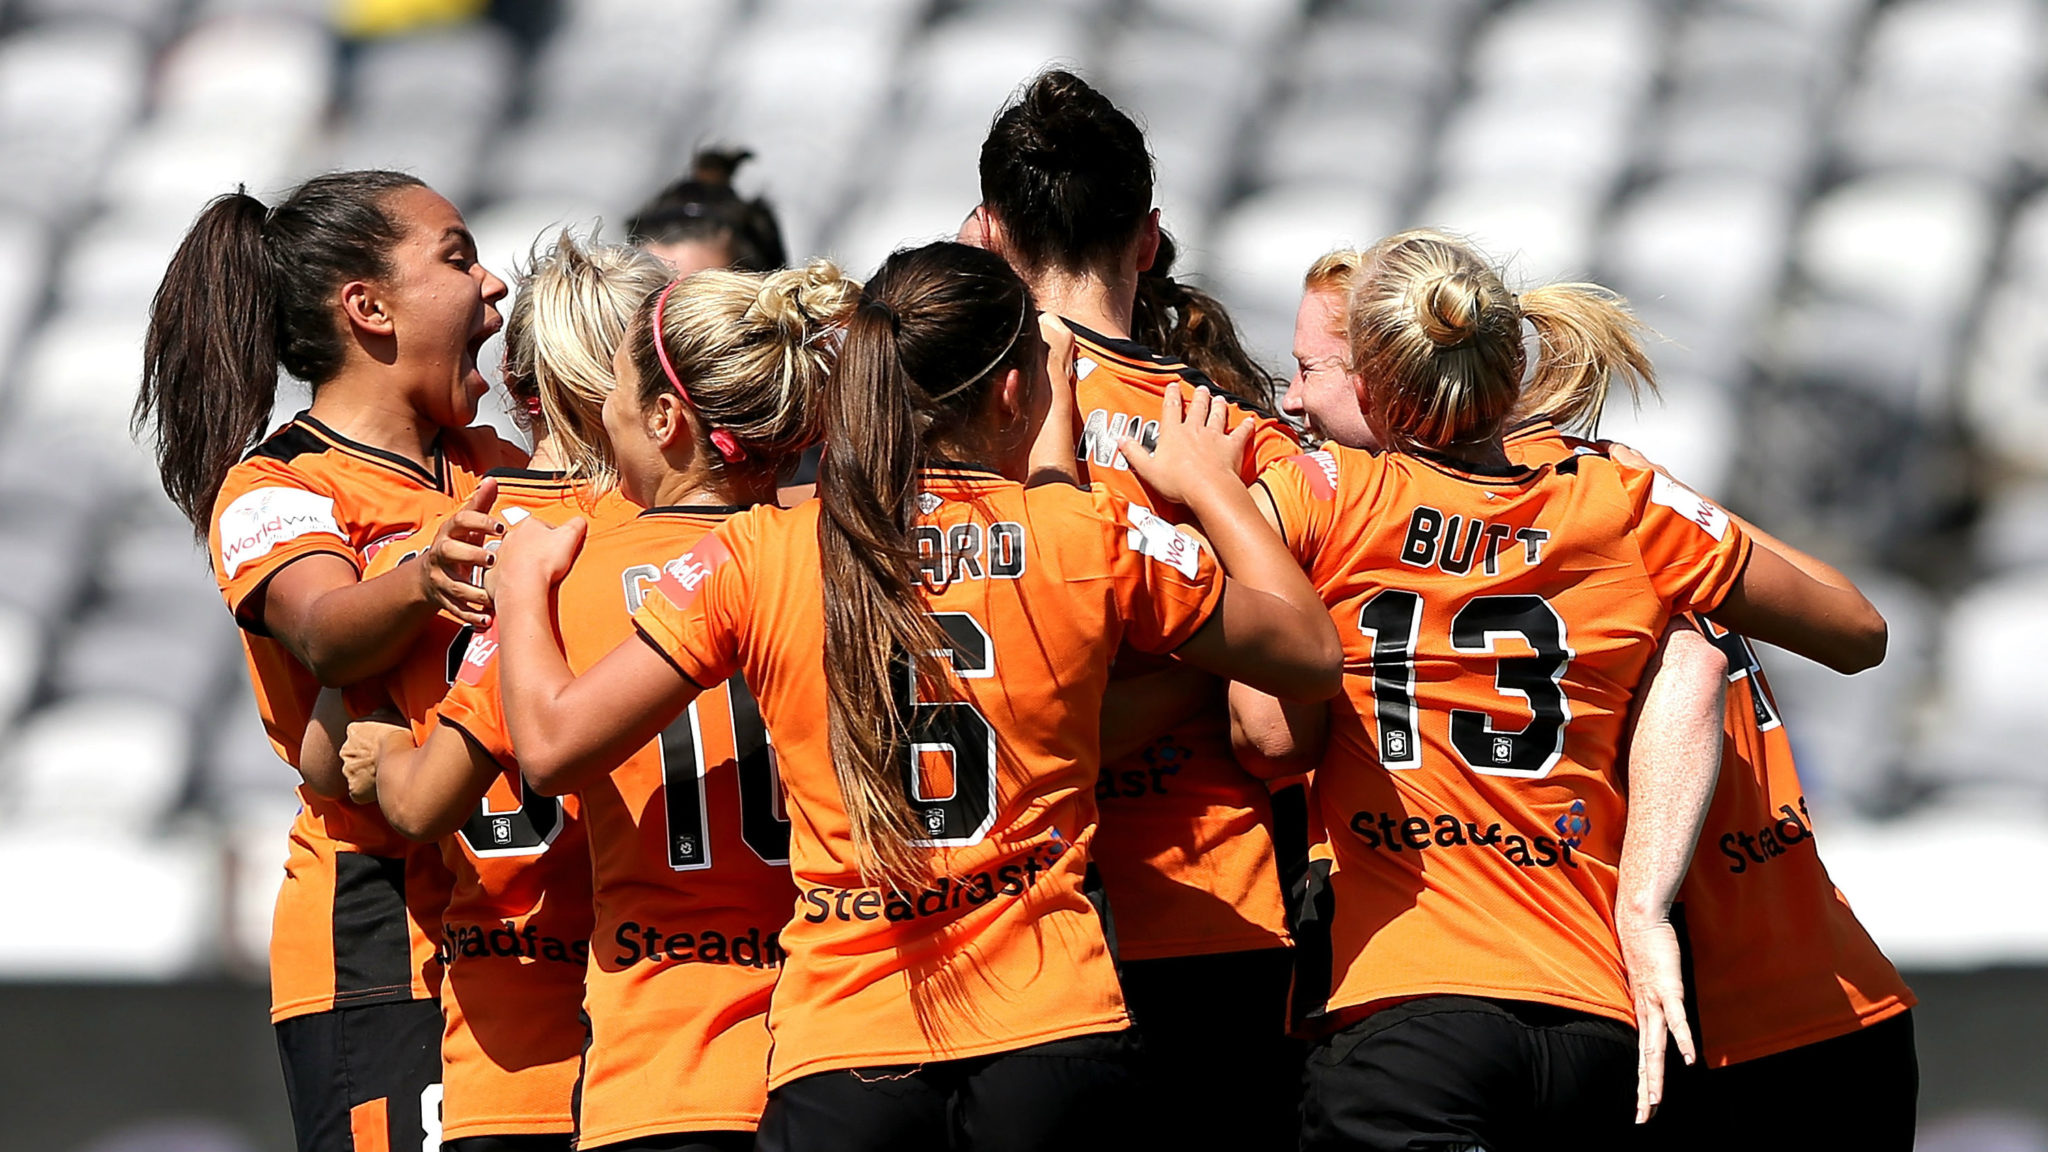 (Photo: Westfield W-League)